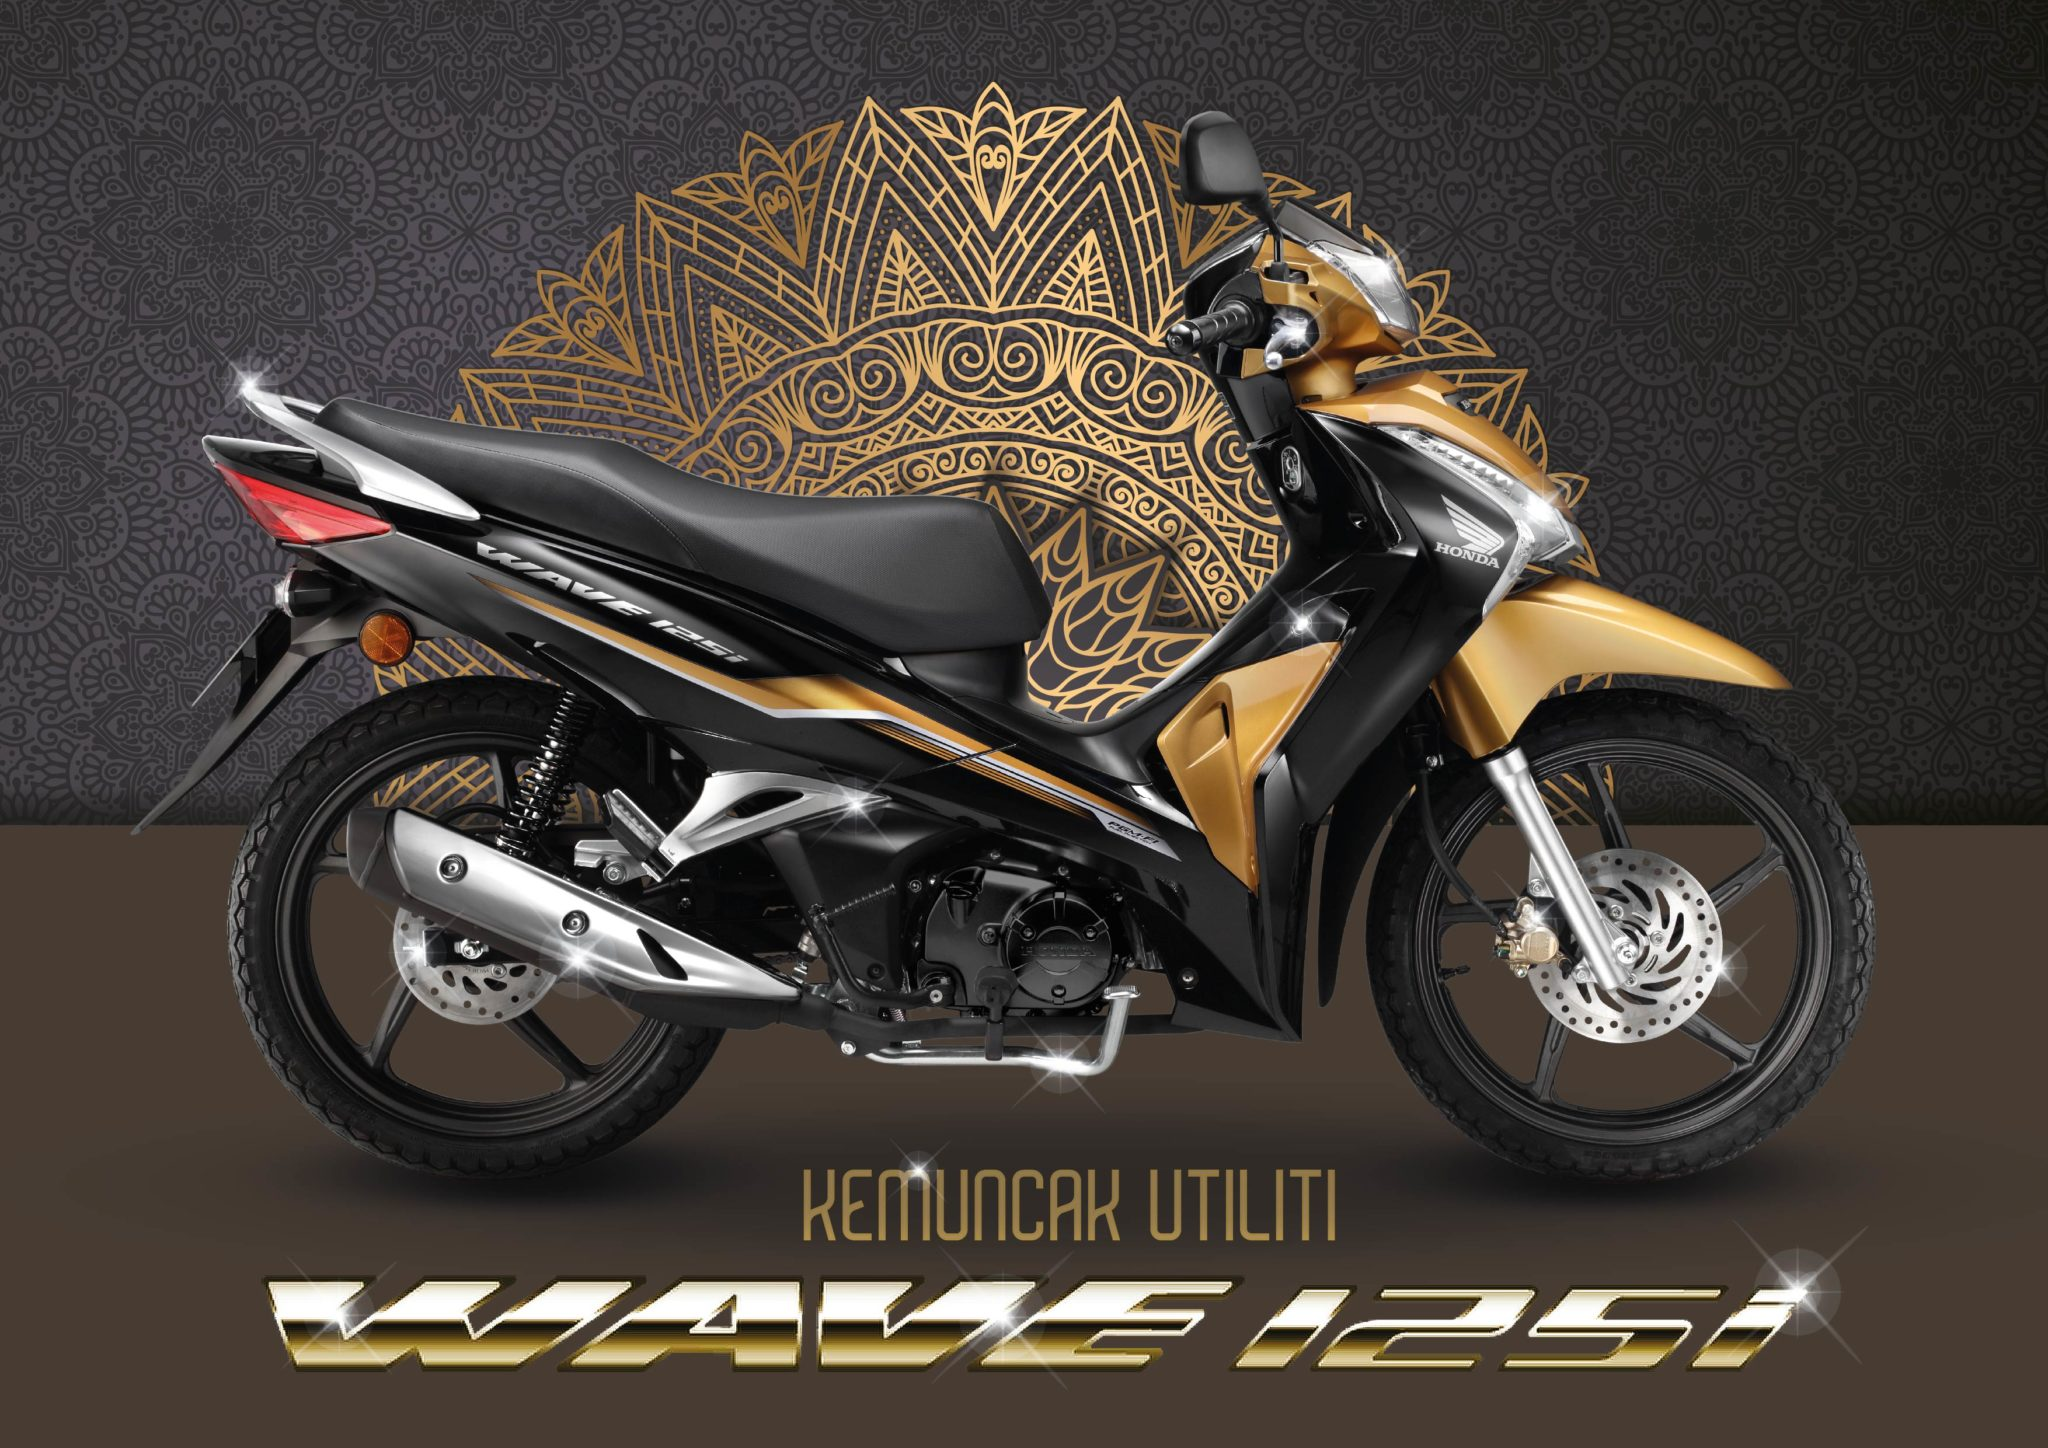 2021 Honda Wave 125i Launched in Malaysia - RM 6,499